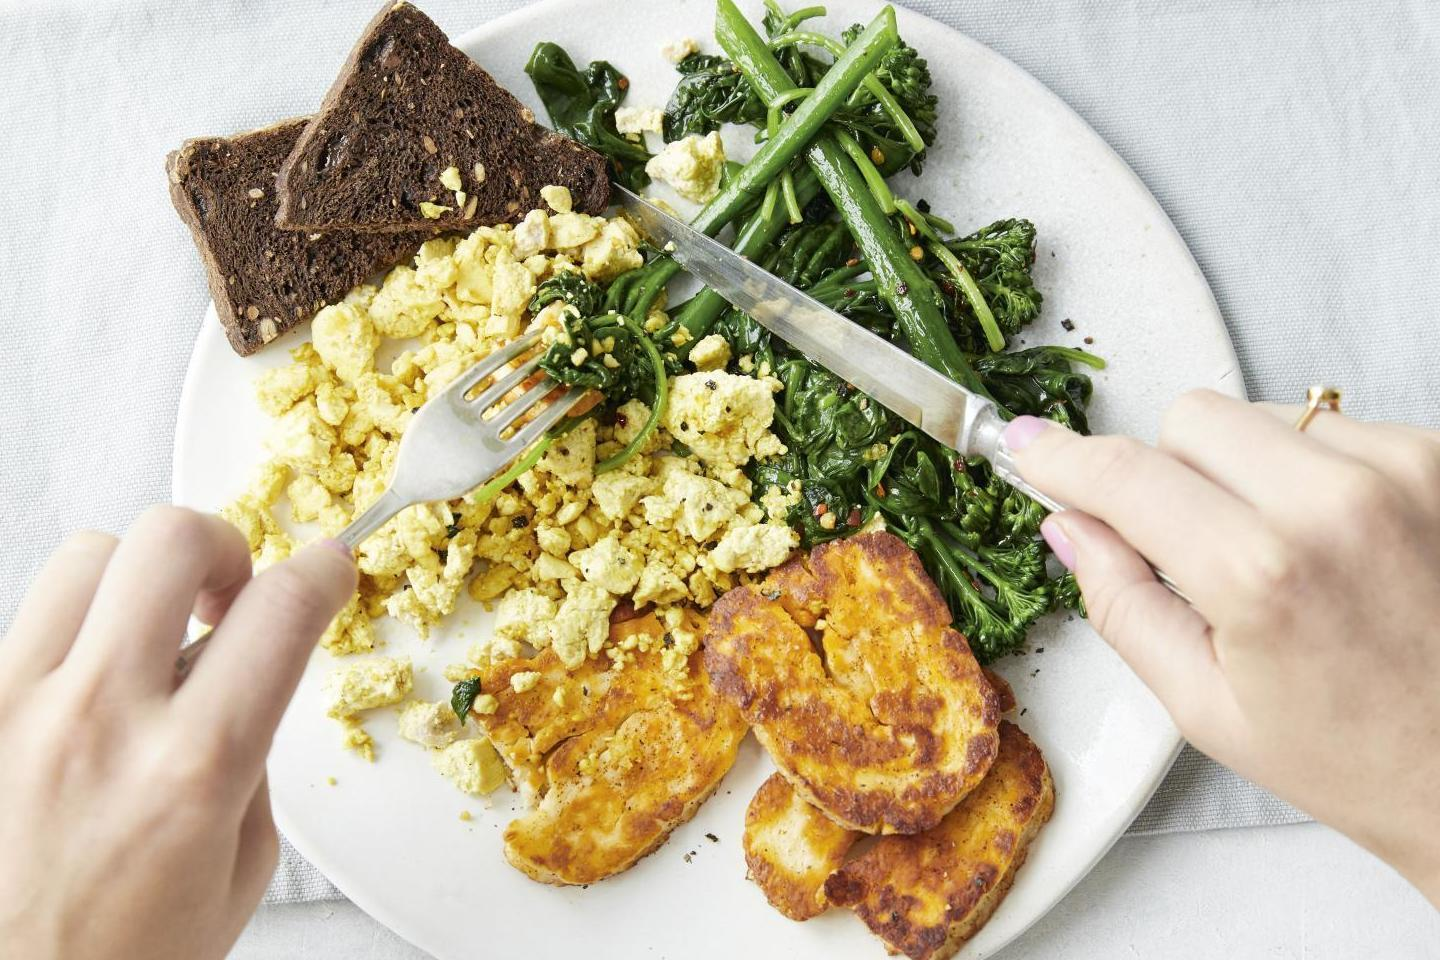 Five recipes for a healthy new lifestyle instead of a diet